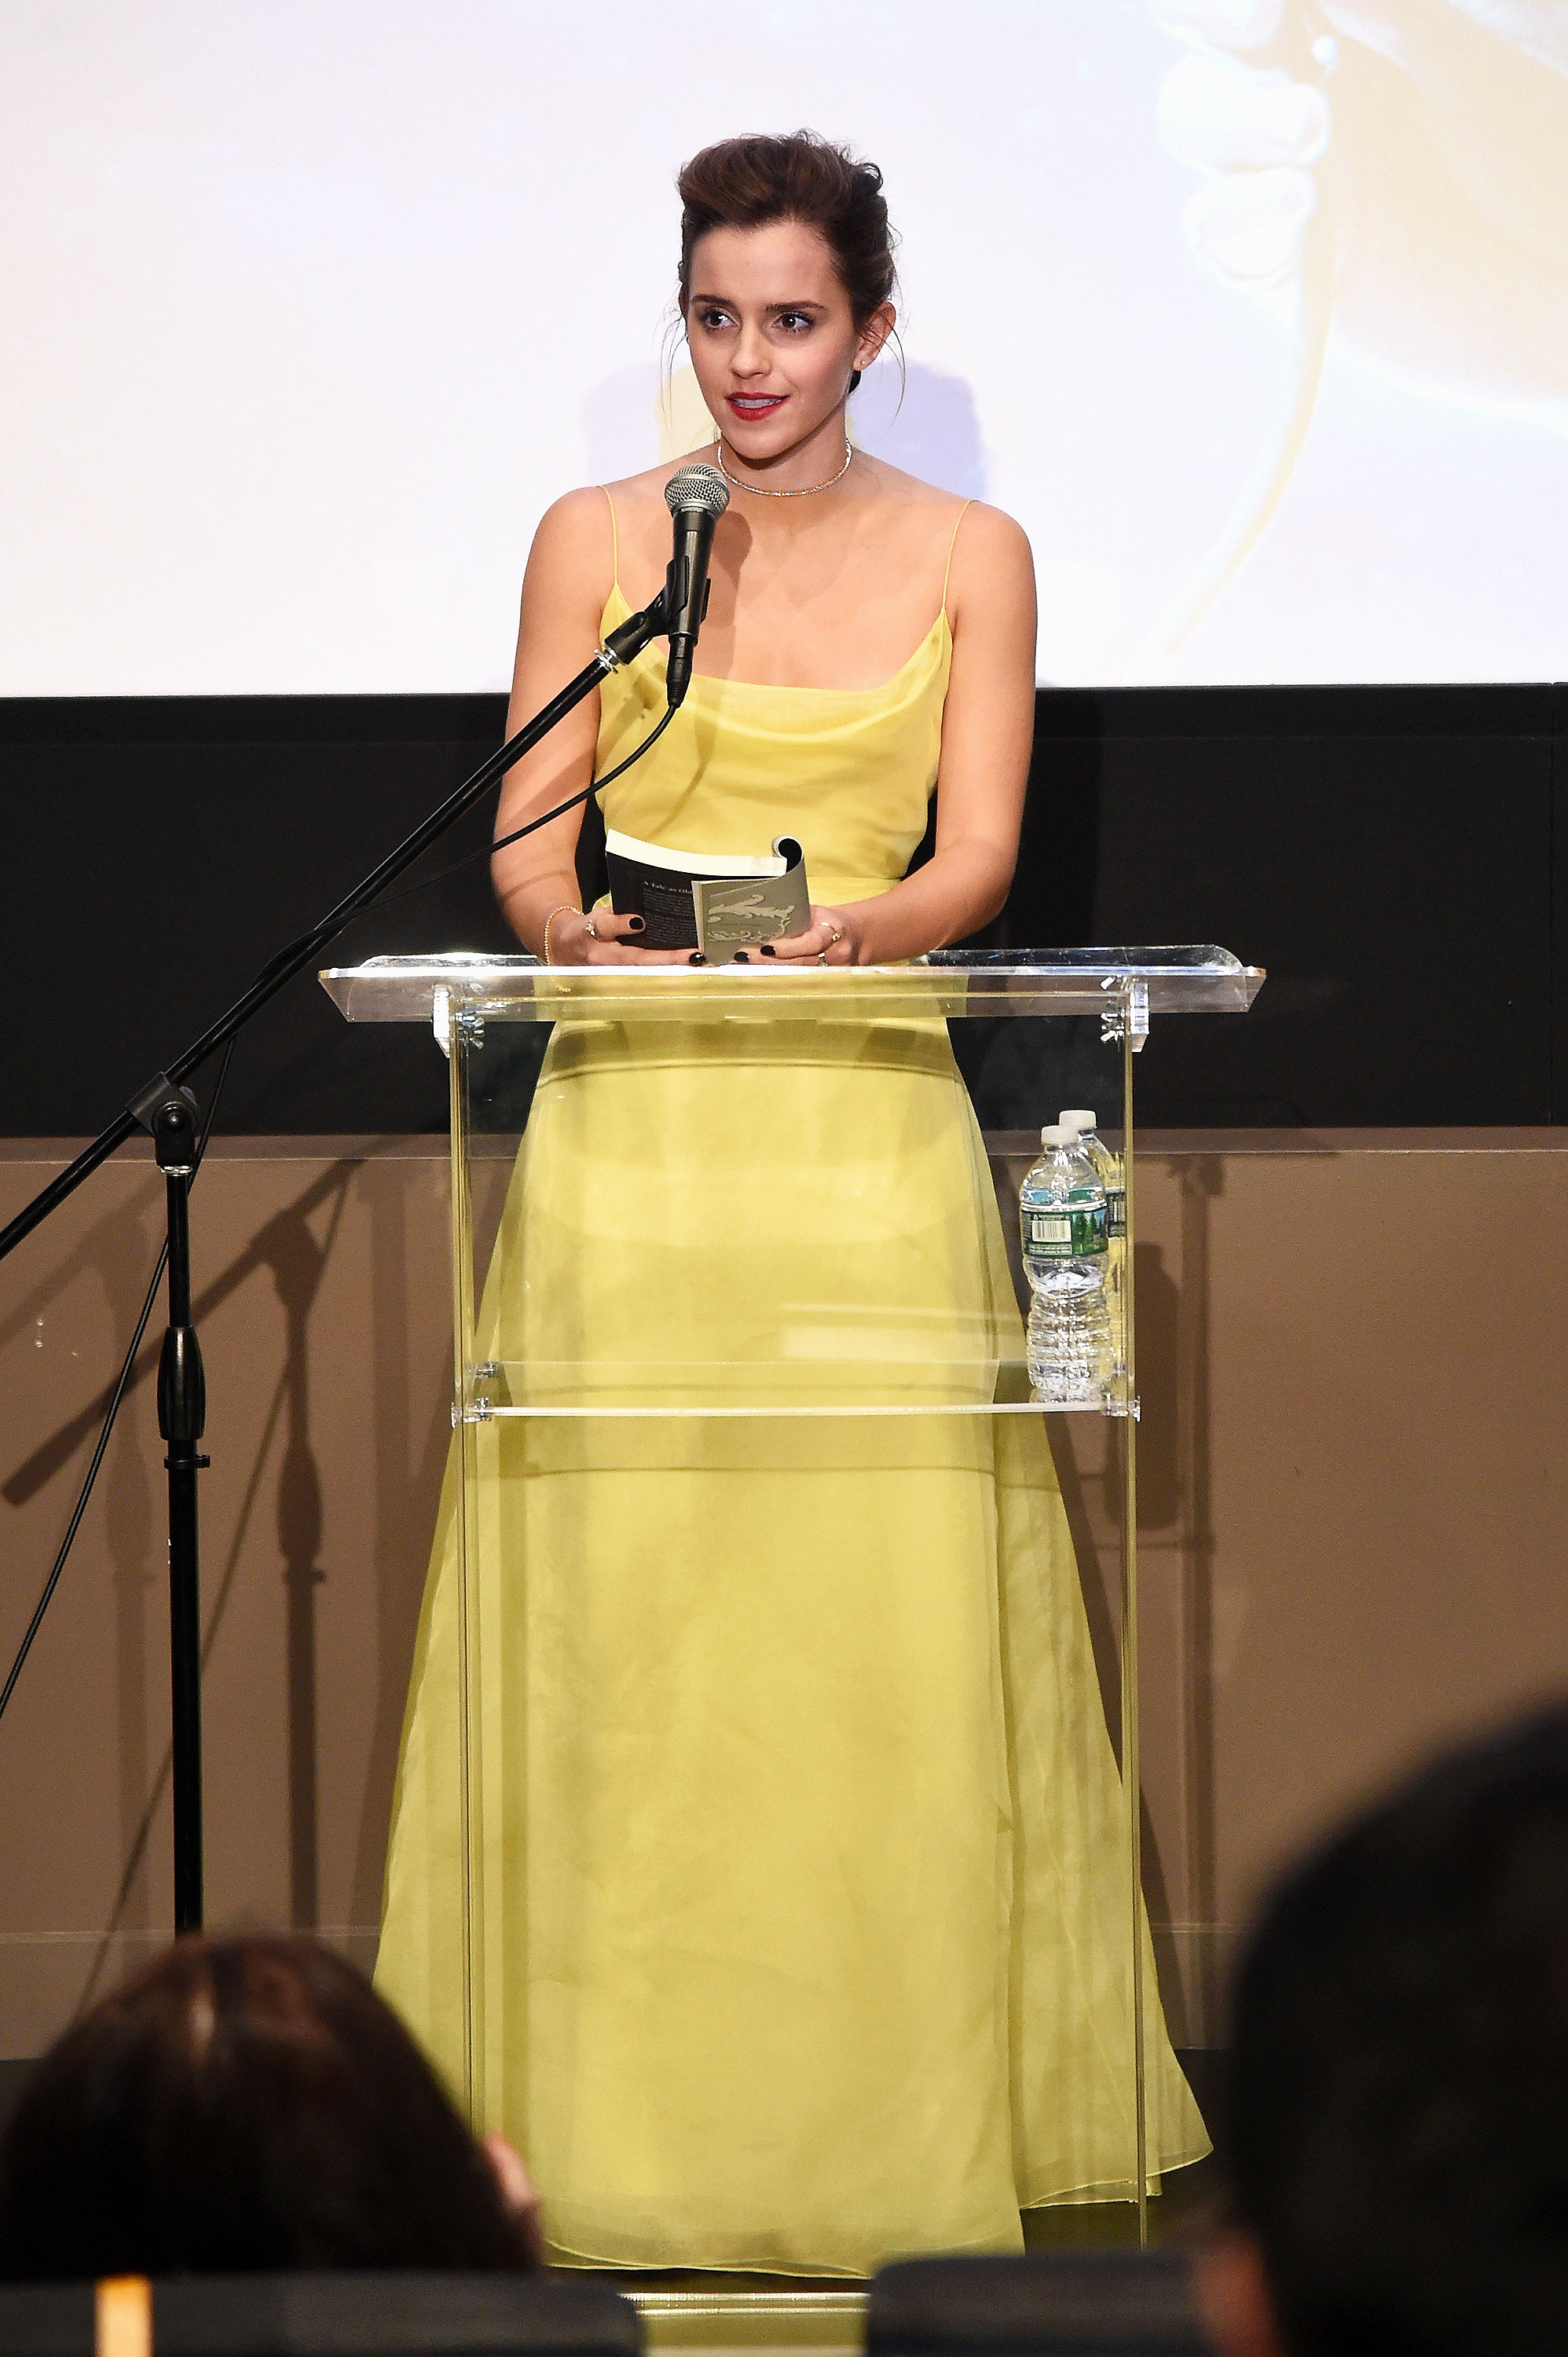 Beauty And The Beast Star Emma Watson Channeled Belle In A Yellow Gown At Special Event With New York Film Society For Kids On Monday March 13